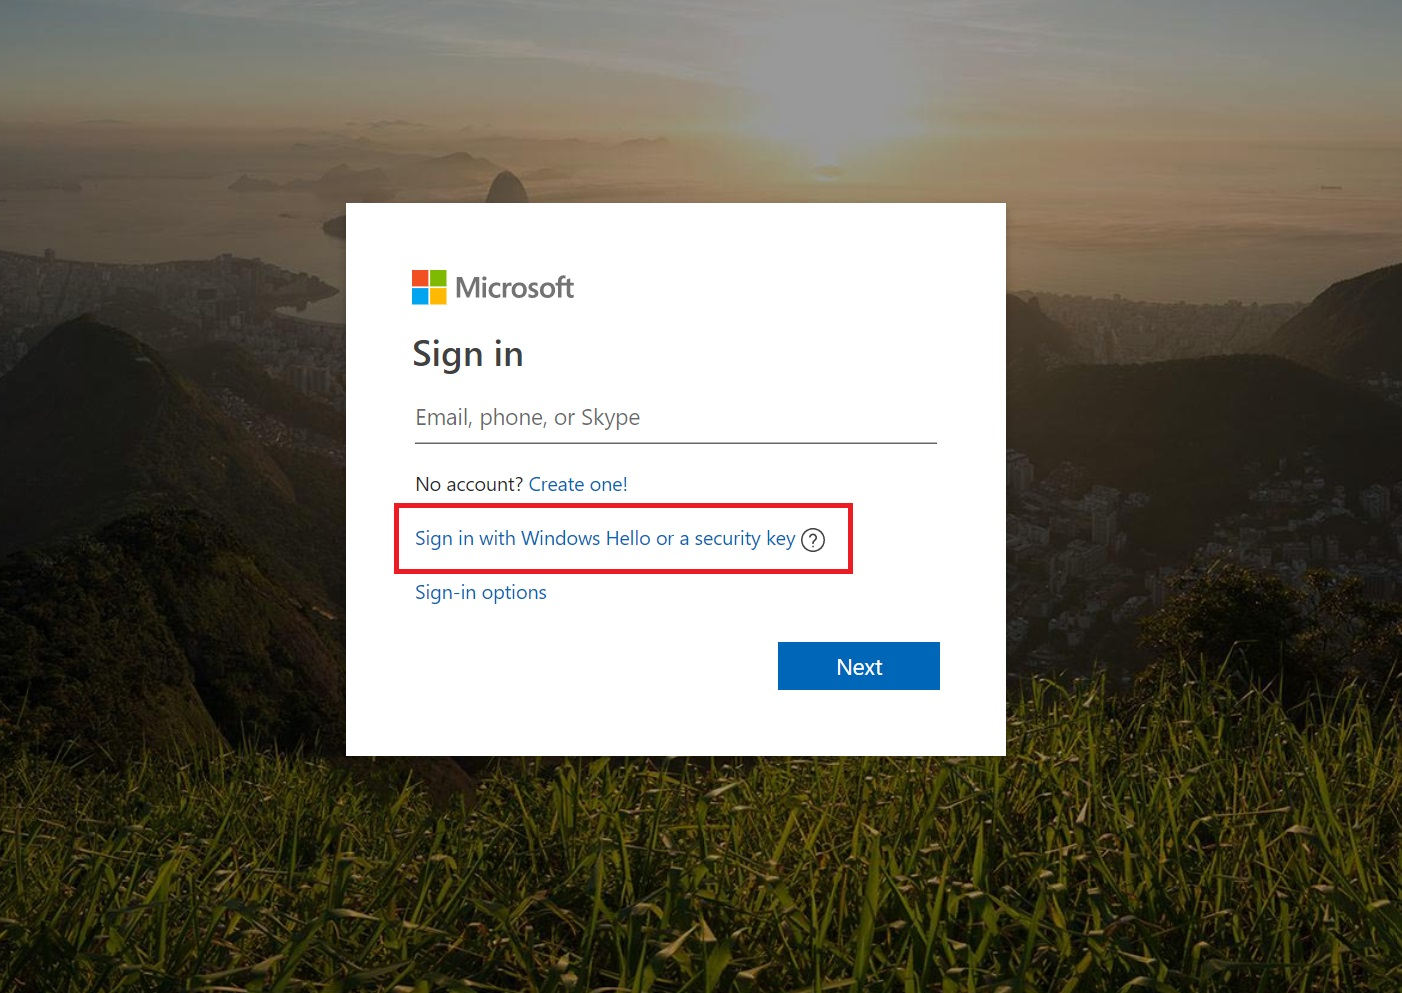 FYI: You can log into your Microsoft Account using Windows